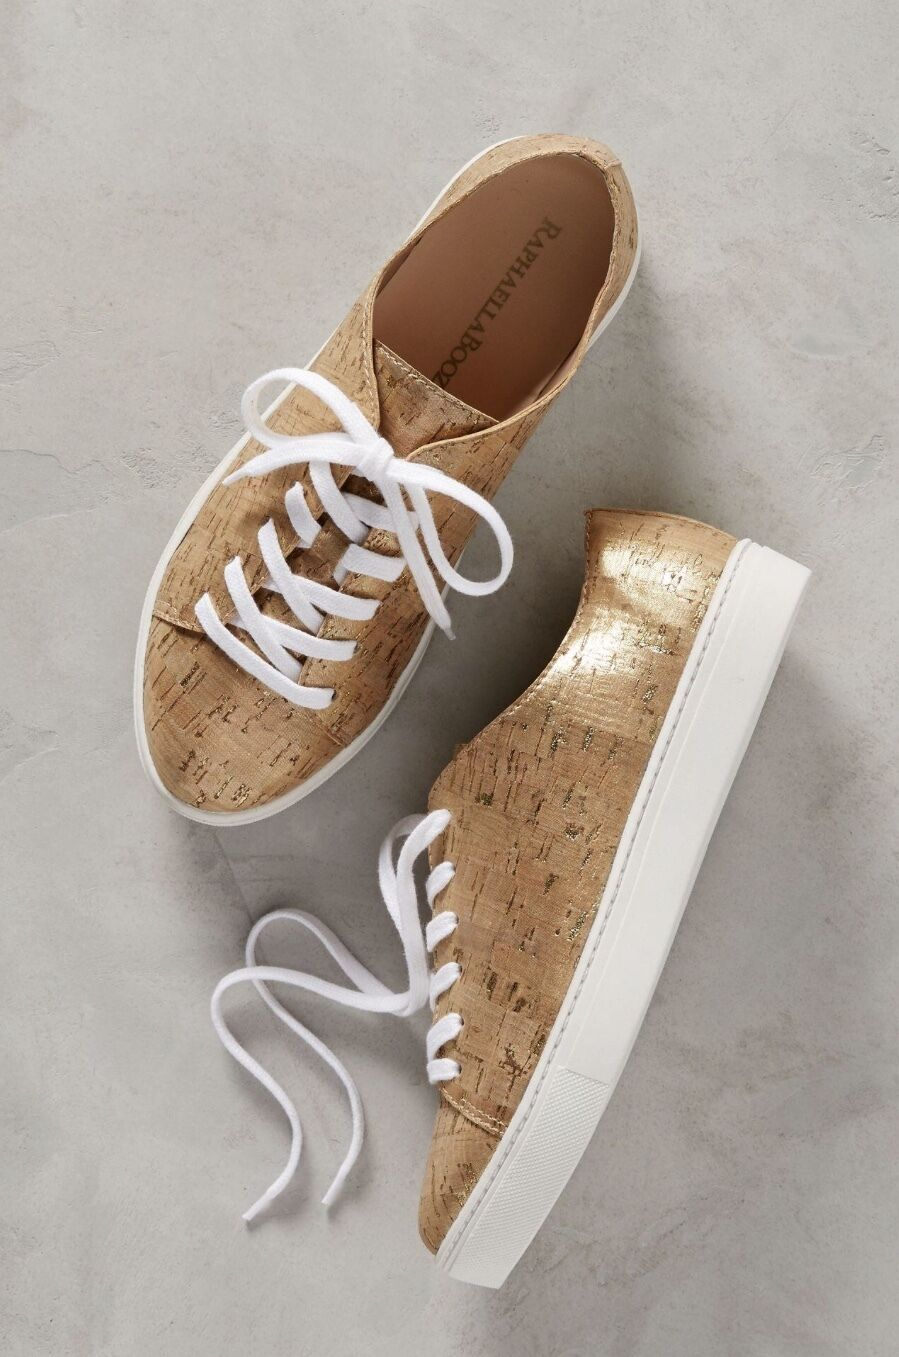 NIB Anthropologie Raphaella Booz Gold Metallic Cork Lace Up Sneakers 8